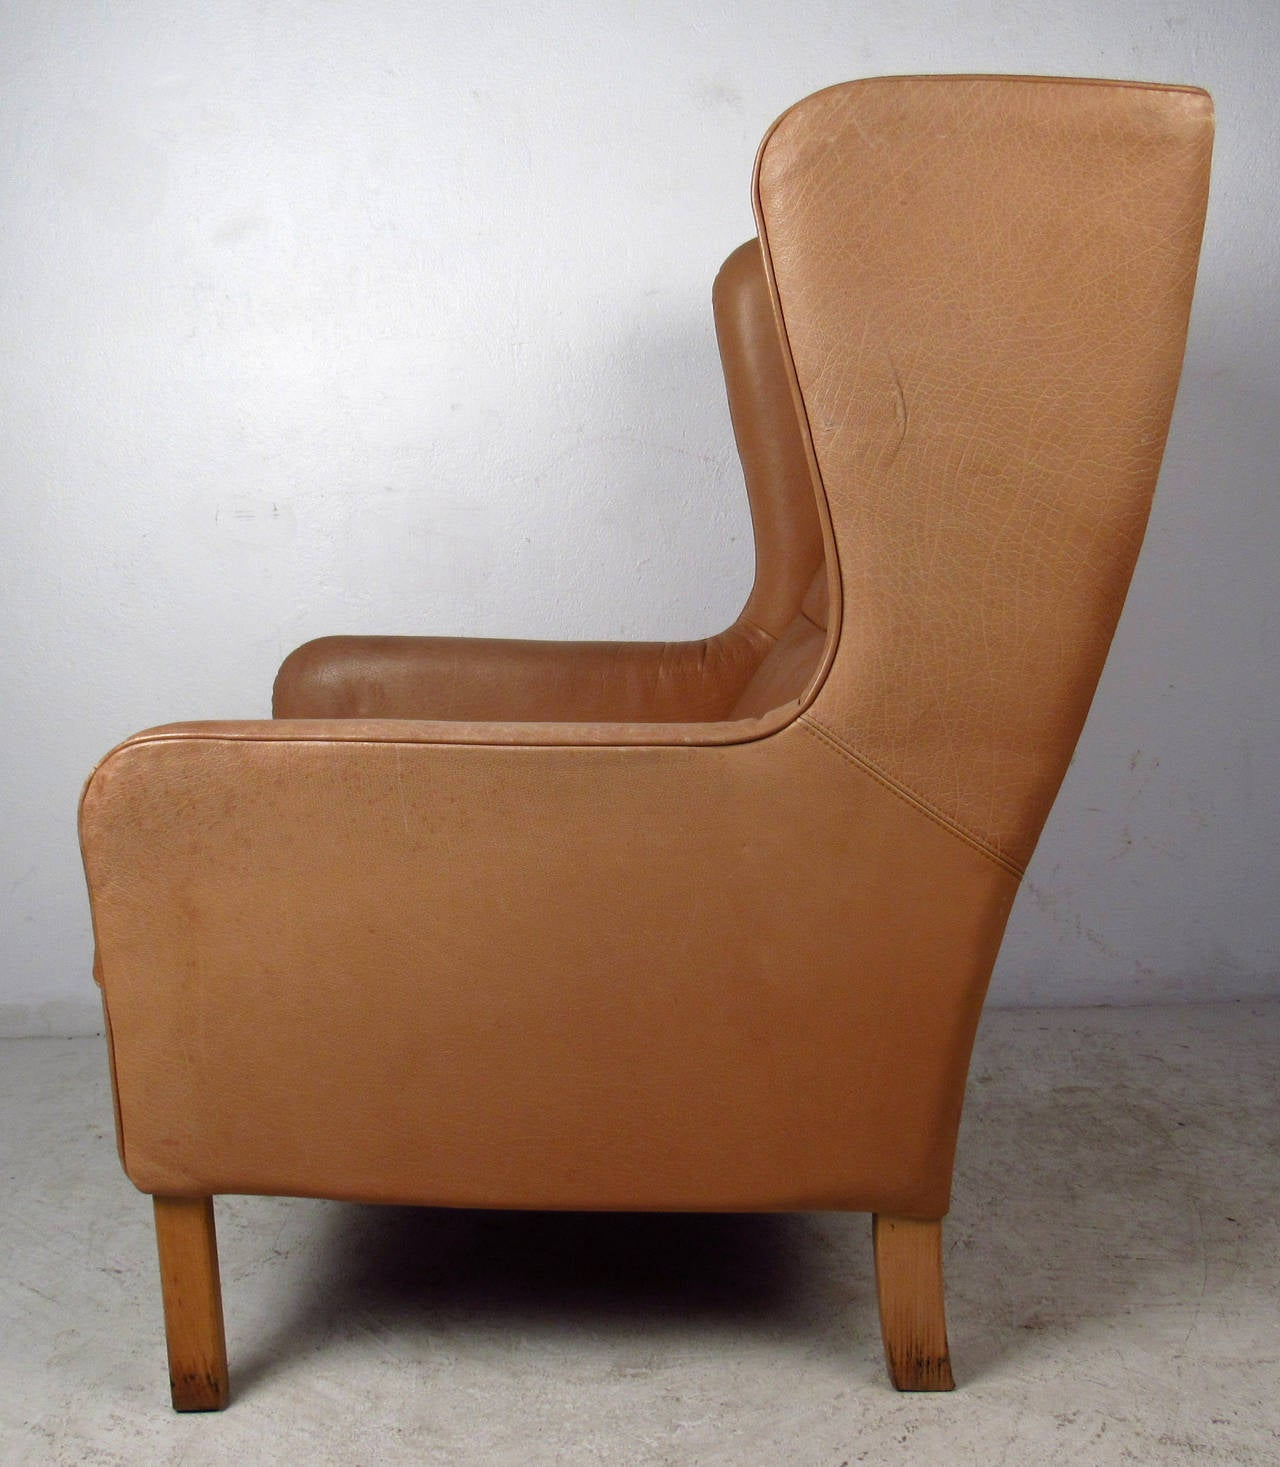 modern wingback chairs for sale red chair mid century tufted leather lounge